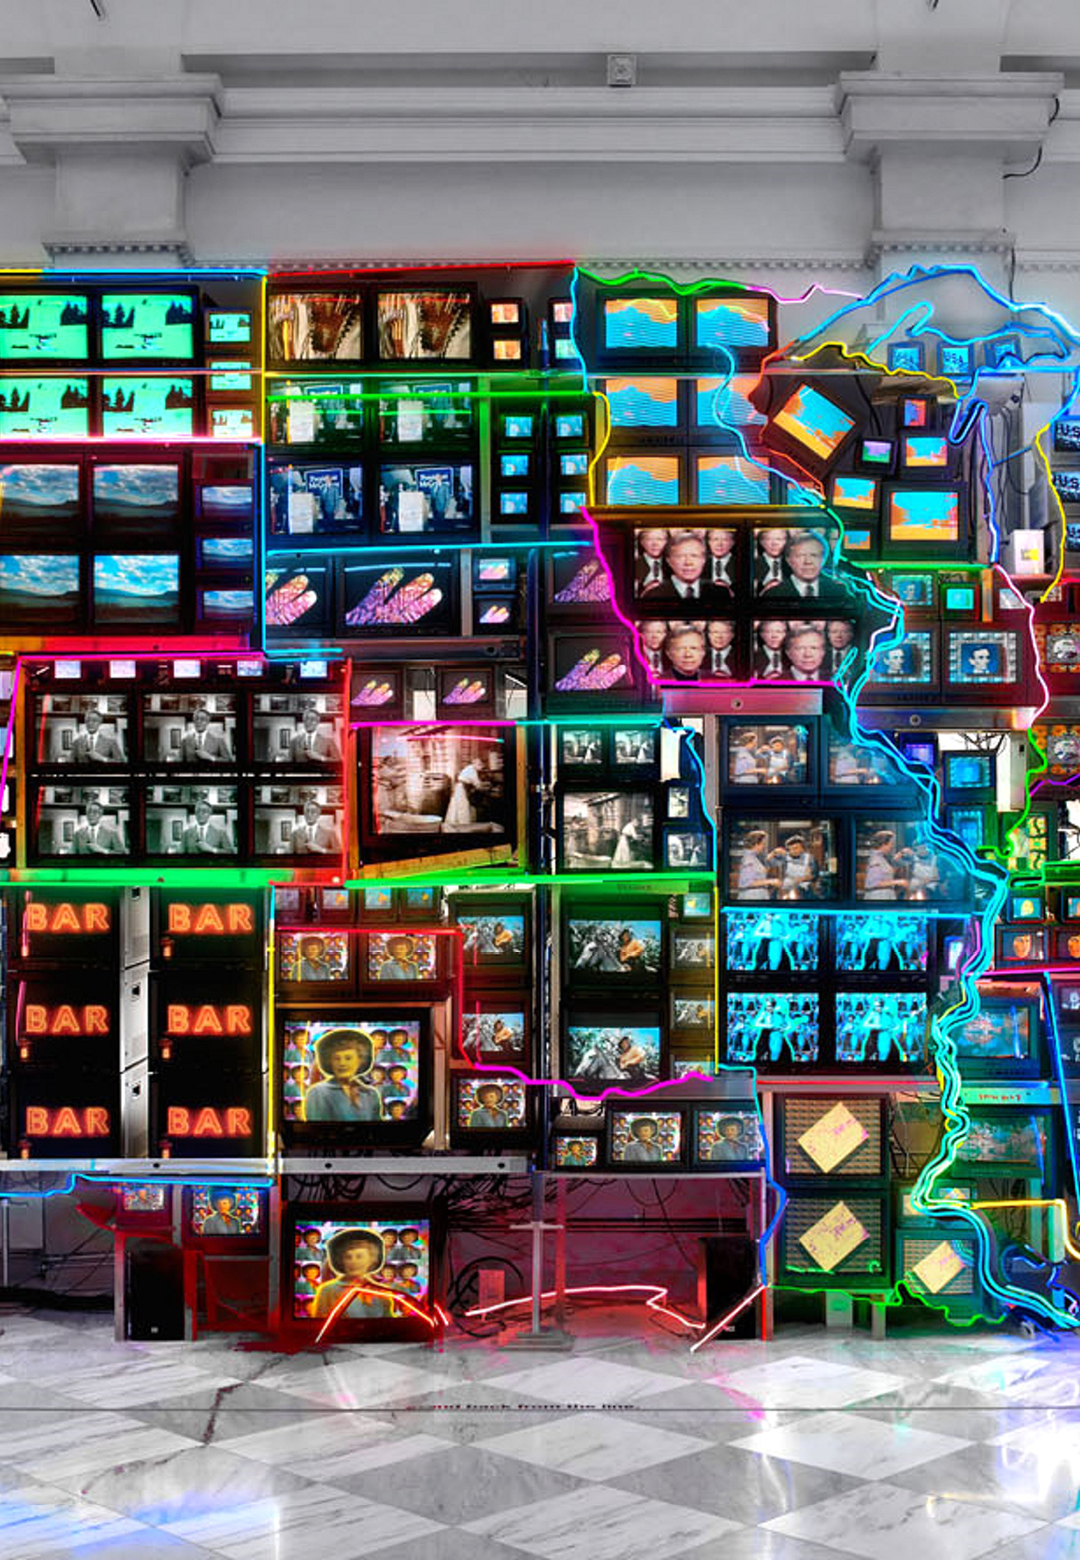 Nam June Paik – Electronic Superhighway: Continental U.S., Alaska, Hawaii, 1995, fifty-one channel video installation 15 x 40 x 4 ft, at the Smithsonian American Art Museum | Art movements | STIRworld